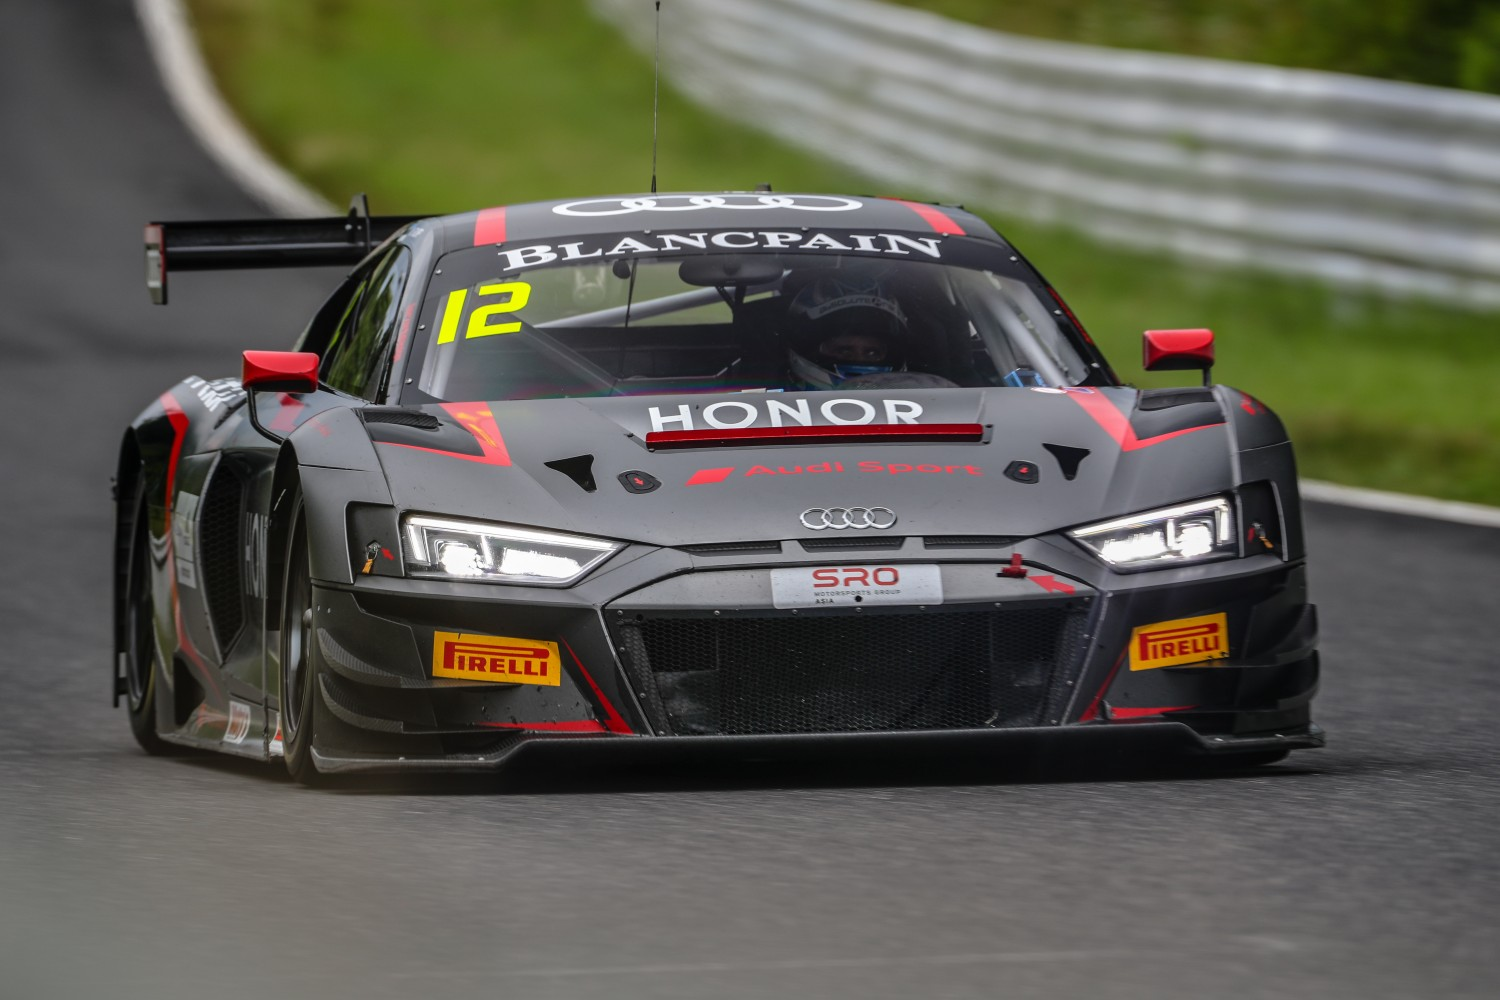 Rump and Picariello share GT3 poles as Team Studie star on home soil in Suzuka